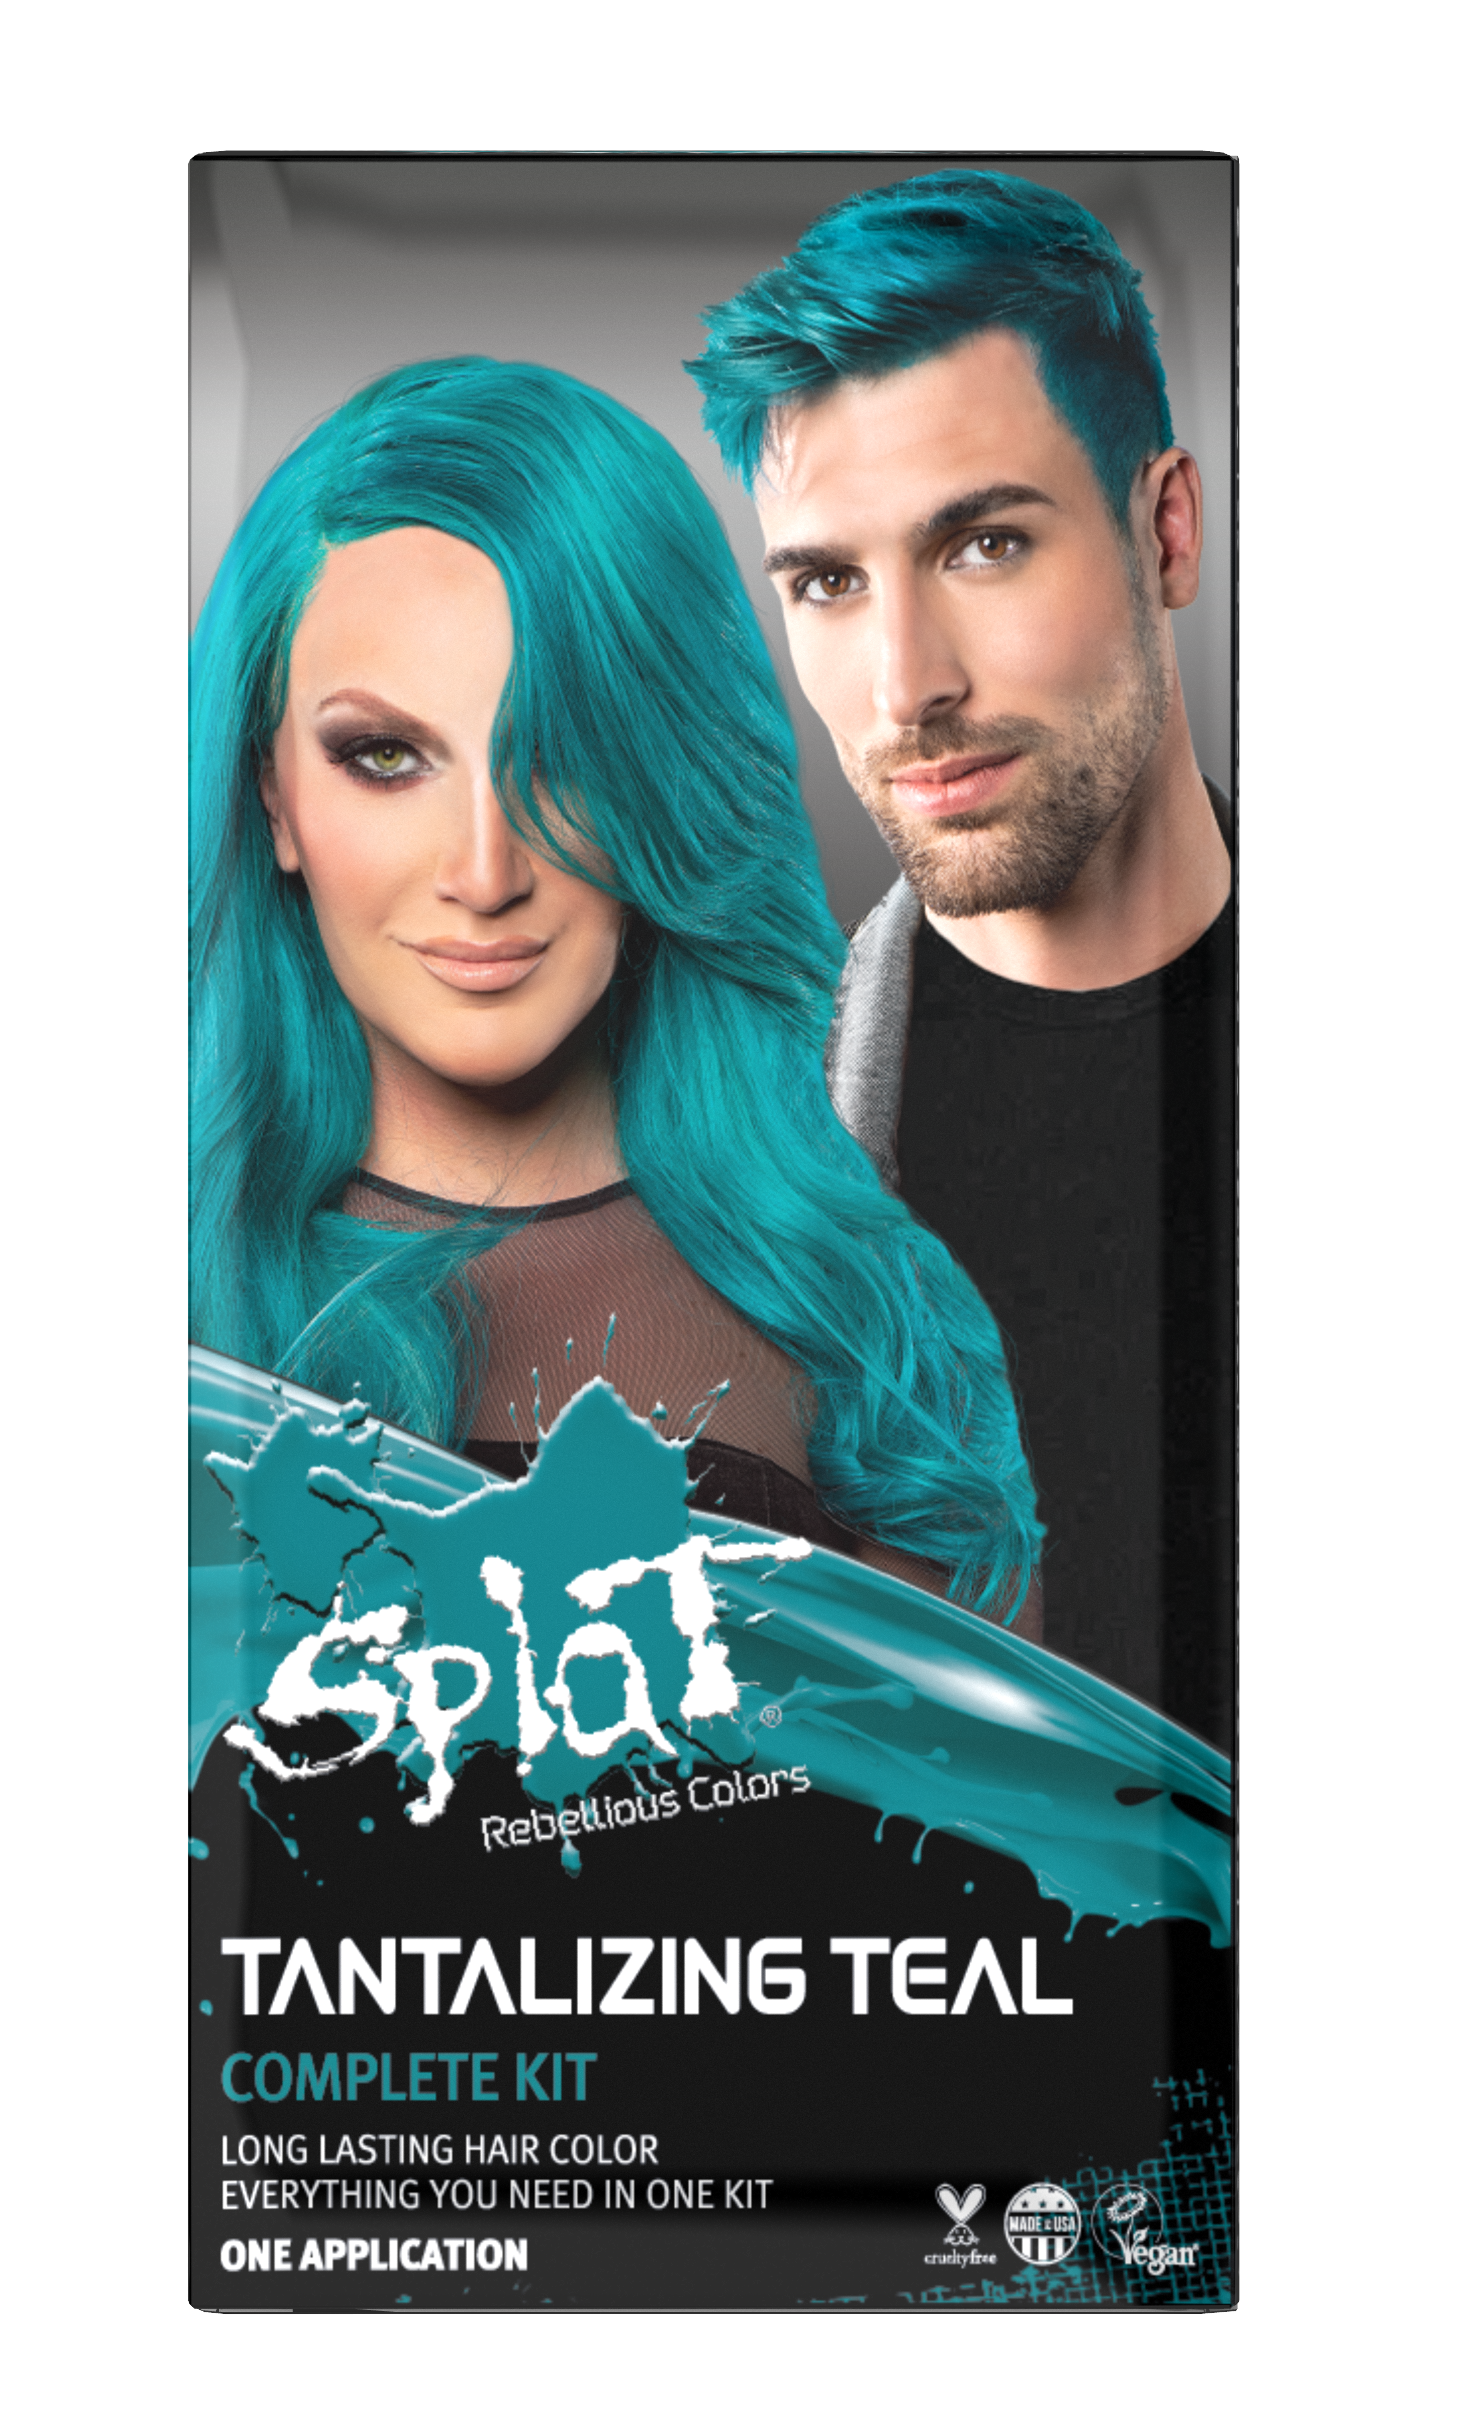 Splat Complete Kit Tantalizing Teal Semi Permanent Teal Hair Dye With Bleach Walmart Com In 2020 Splat Hair Color Hair Color Scene Hair Tutorial